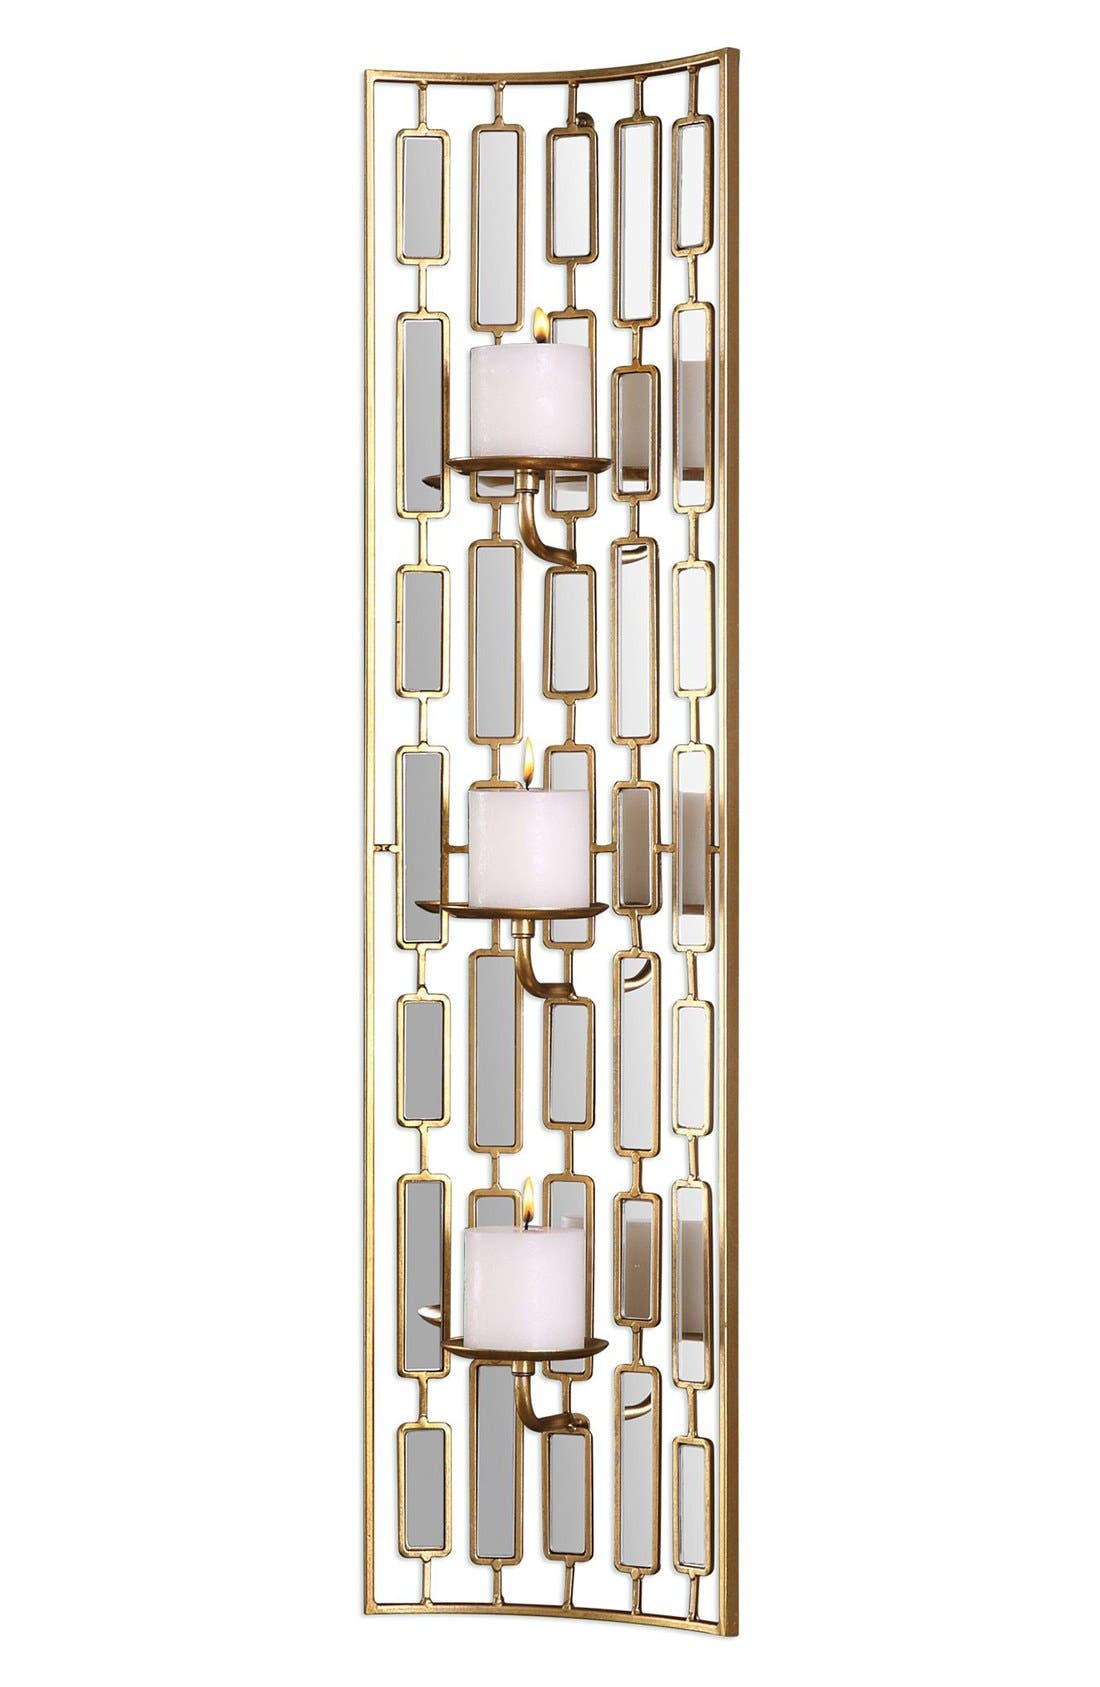 Main Image - Uttermost Mirrored Candleholder Wall Sconce